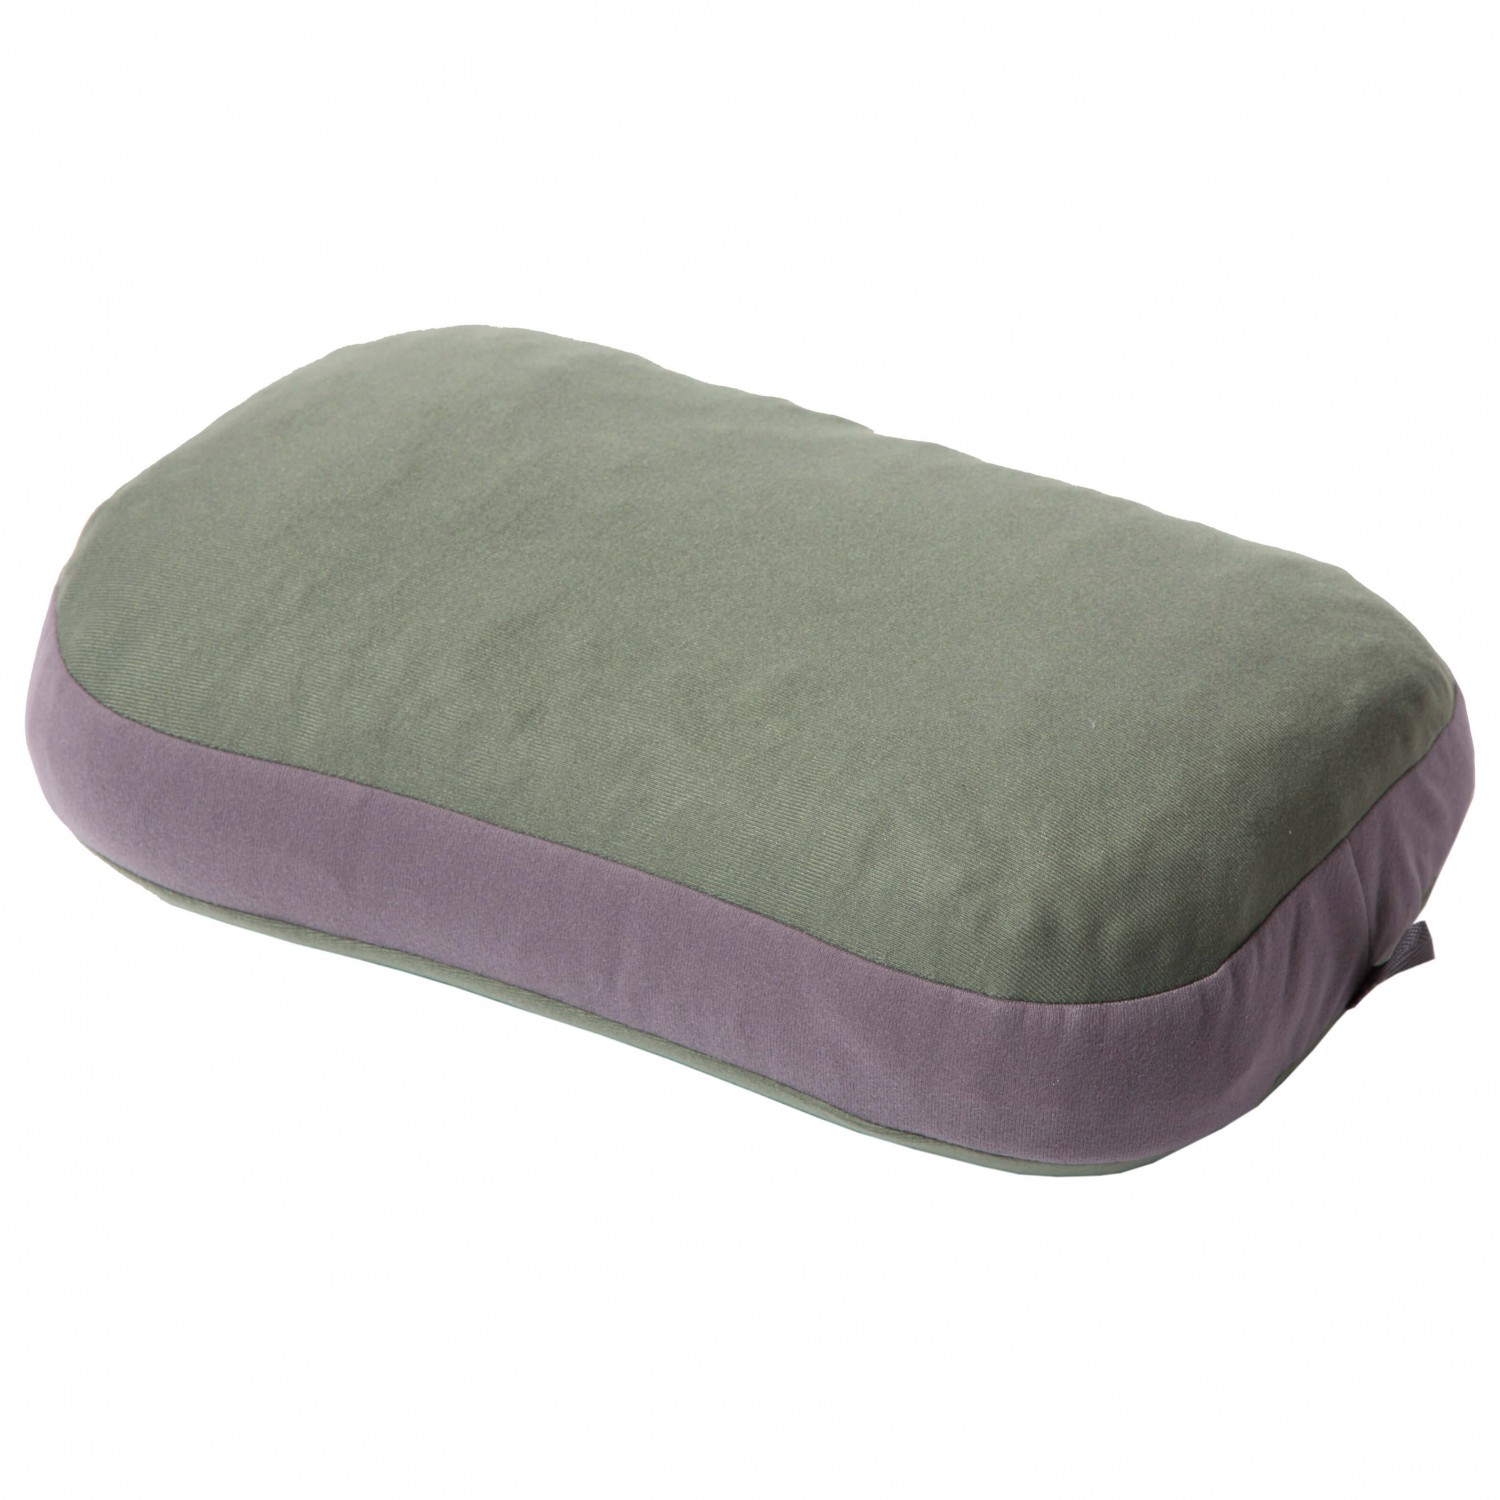 exped rem pillow kussen online kopen On the pillow kussen